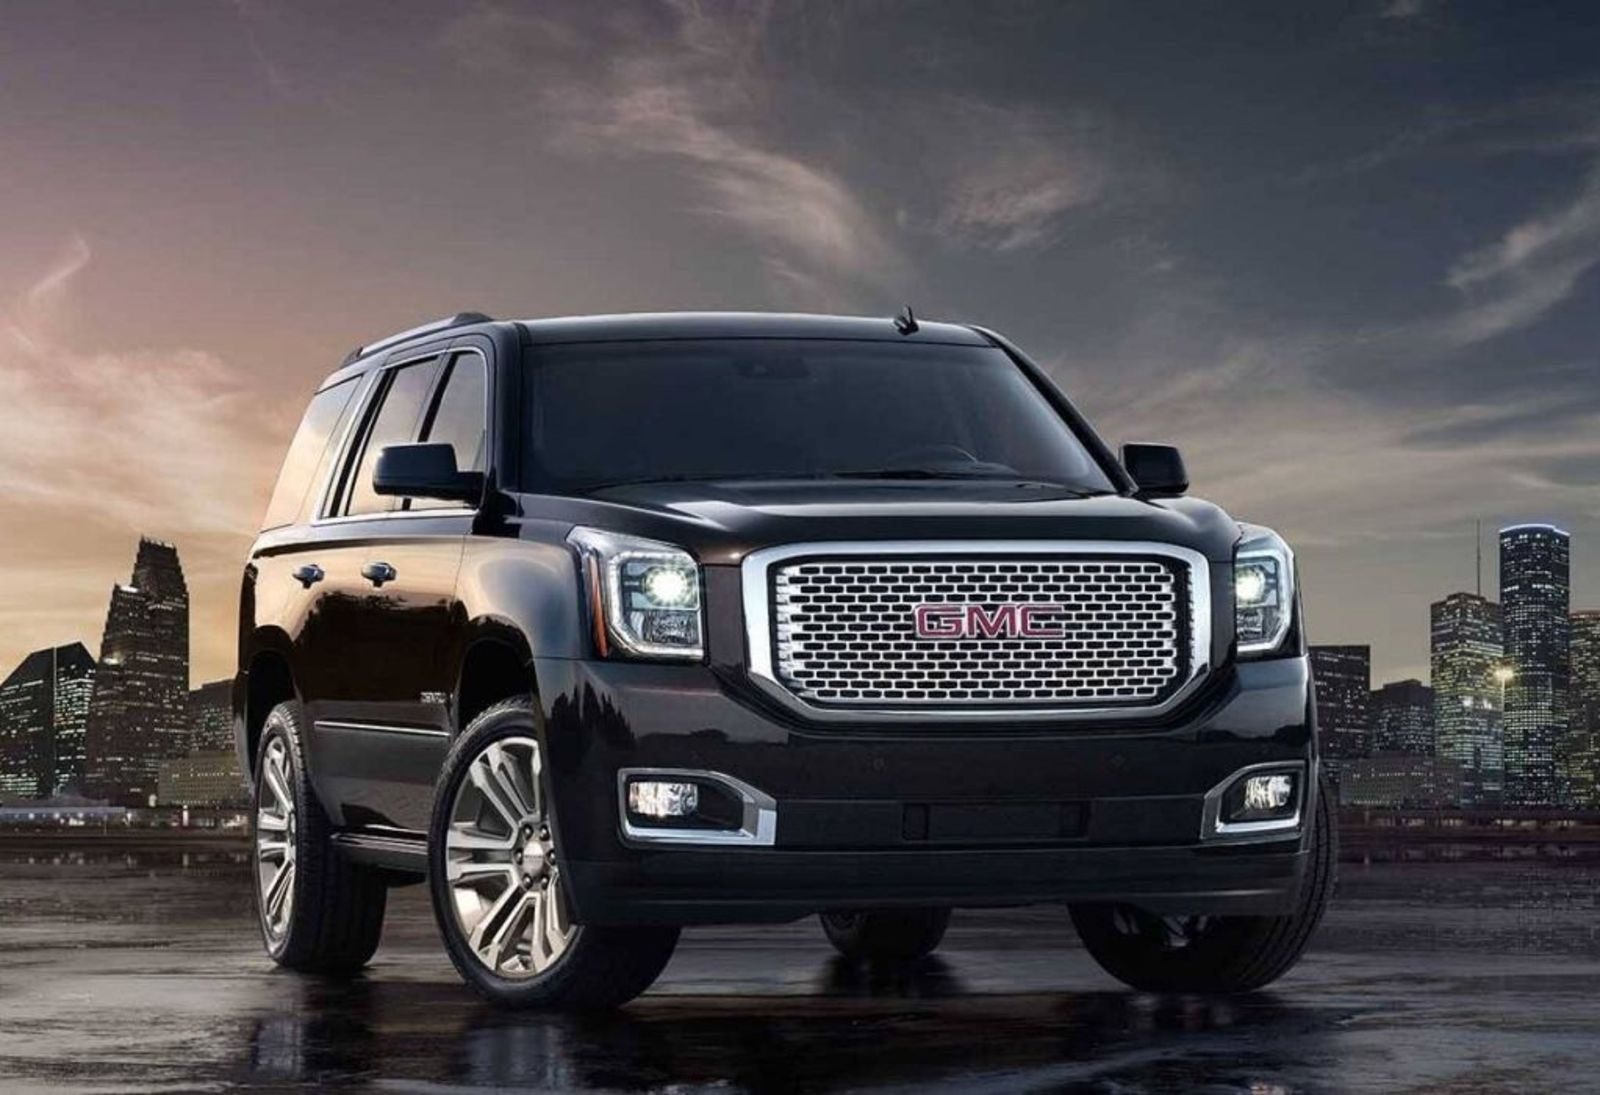 2017 gmc yukon xl for sale in youngstown oh sweeney chevy buick gmc. Black Bedroom Furniture Sets. Home Design Ideas